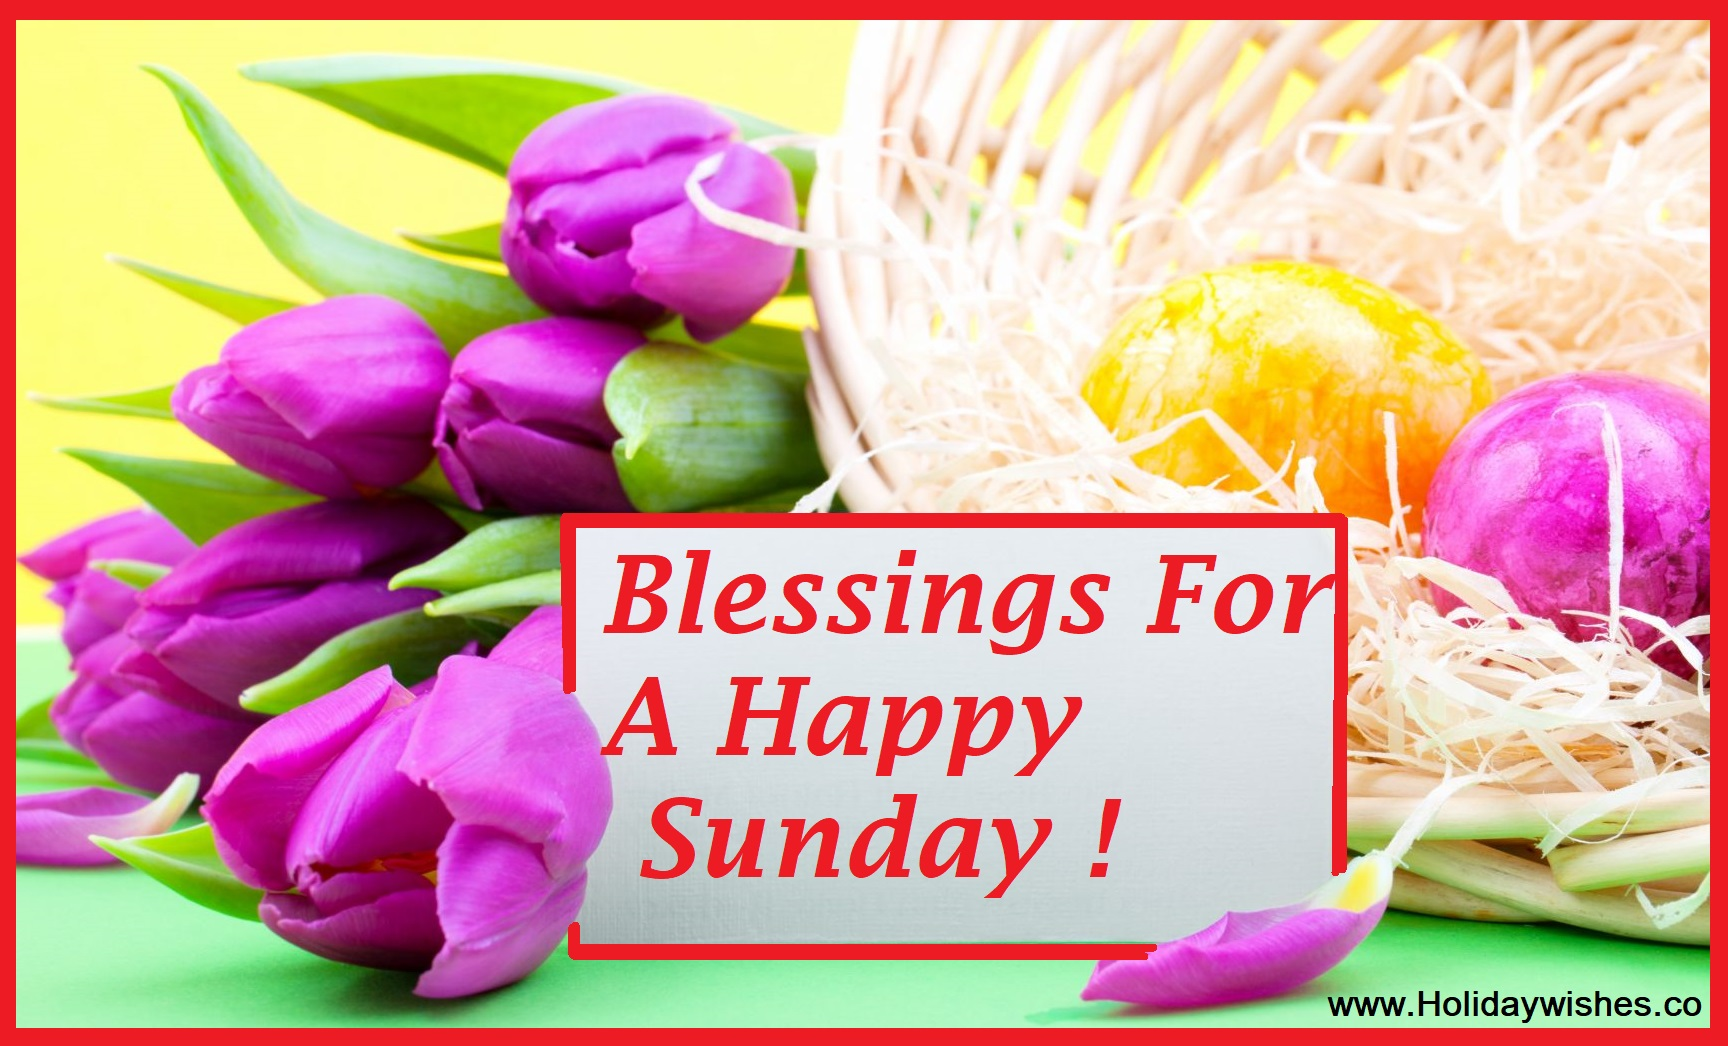 Beautiful happy sunday good morning pictures with rose flowers beautiful happy sunday good morning pictures with rose flowers holiday wishes izmirmasajfo